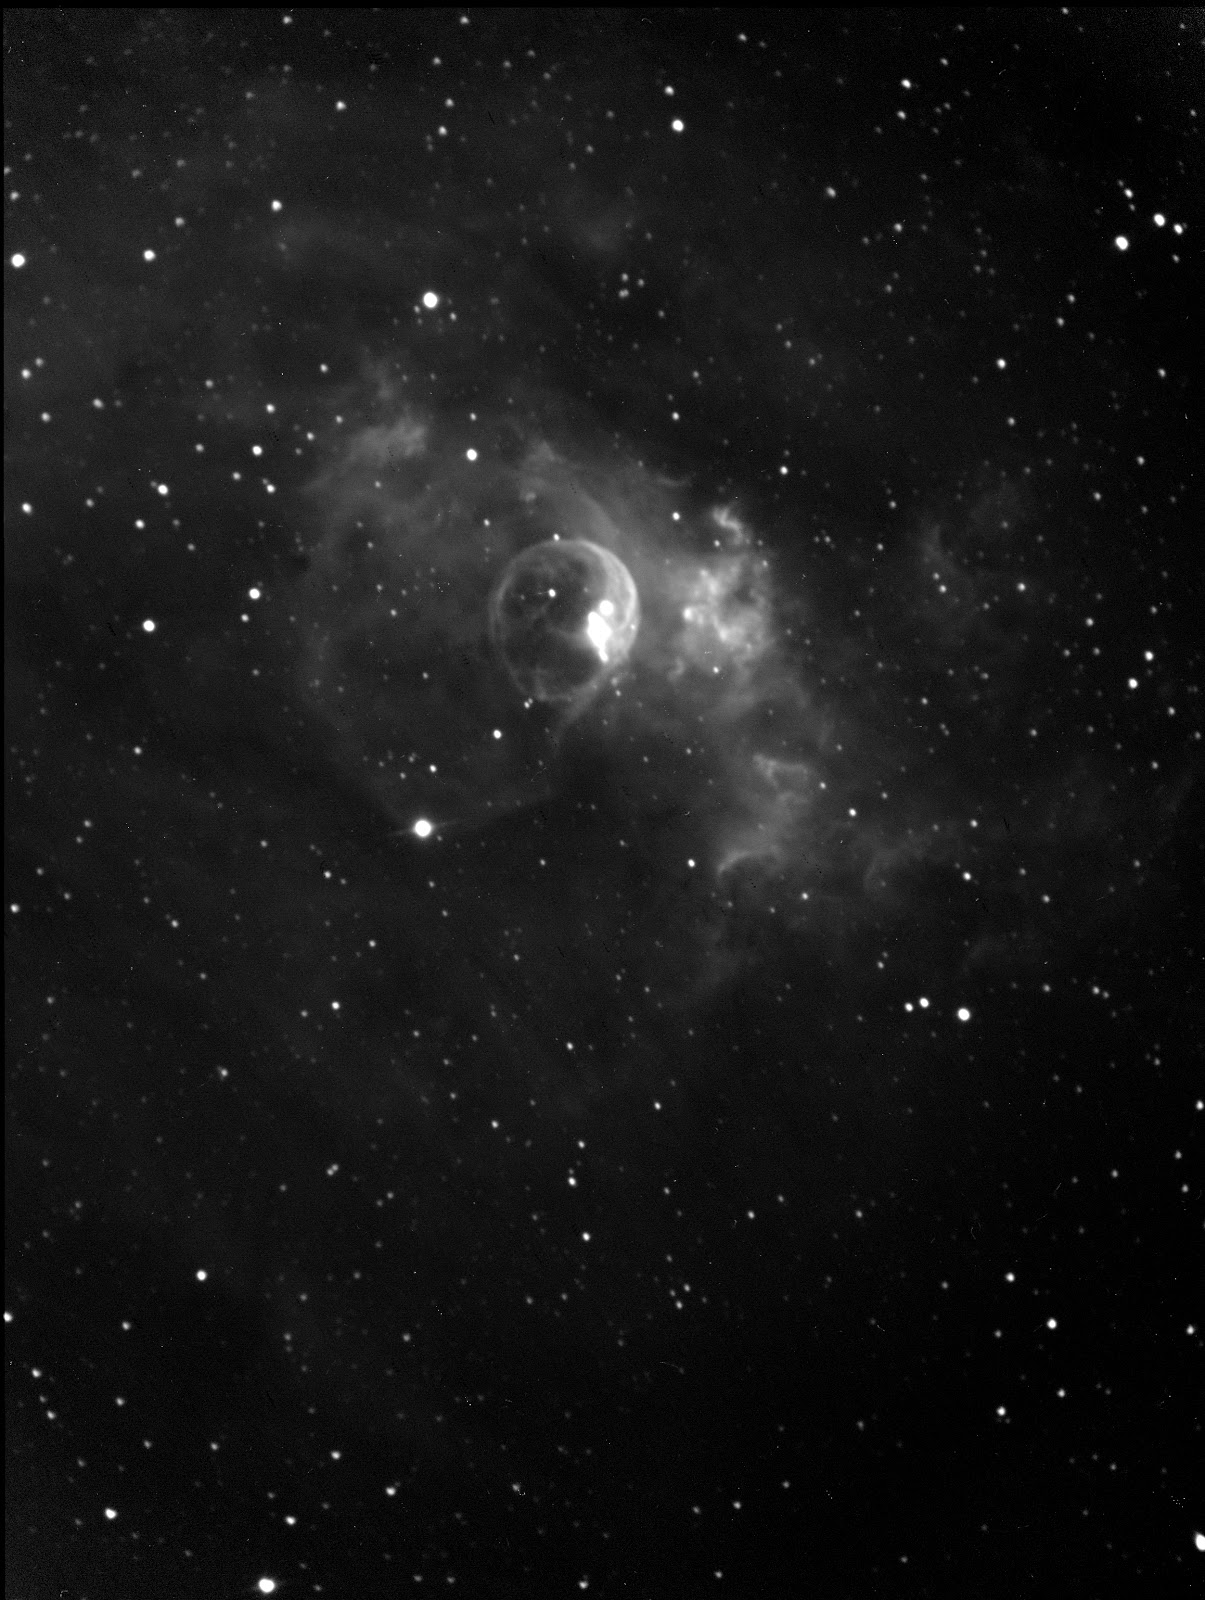 AstroBilly's Solid Angle: NGC 7635 - The Bubble Nebula